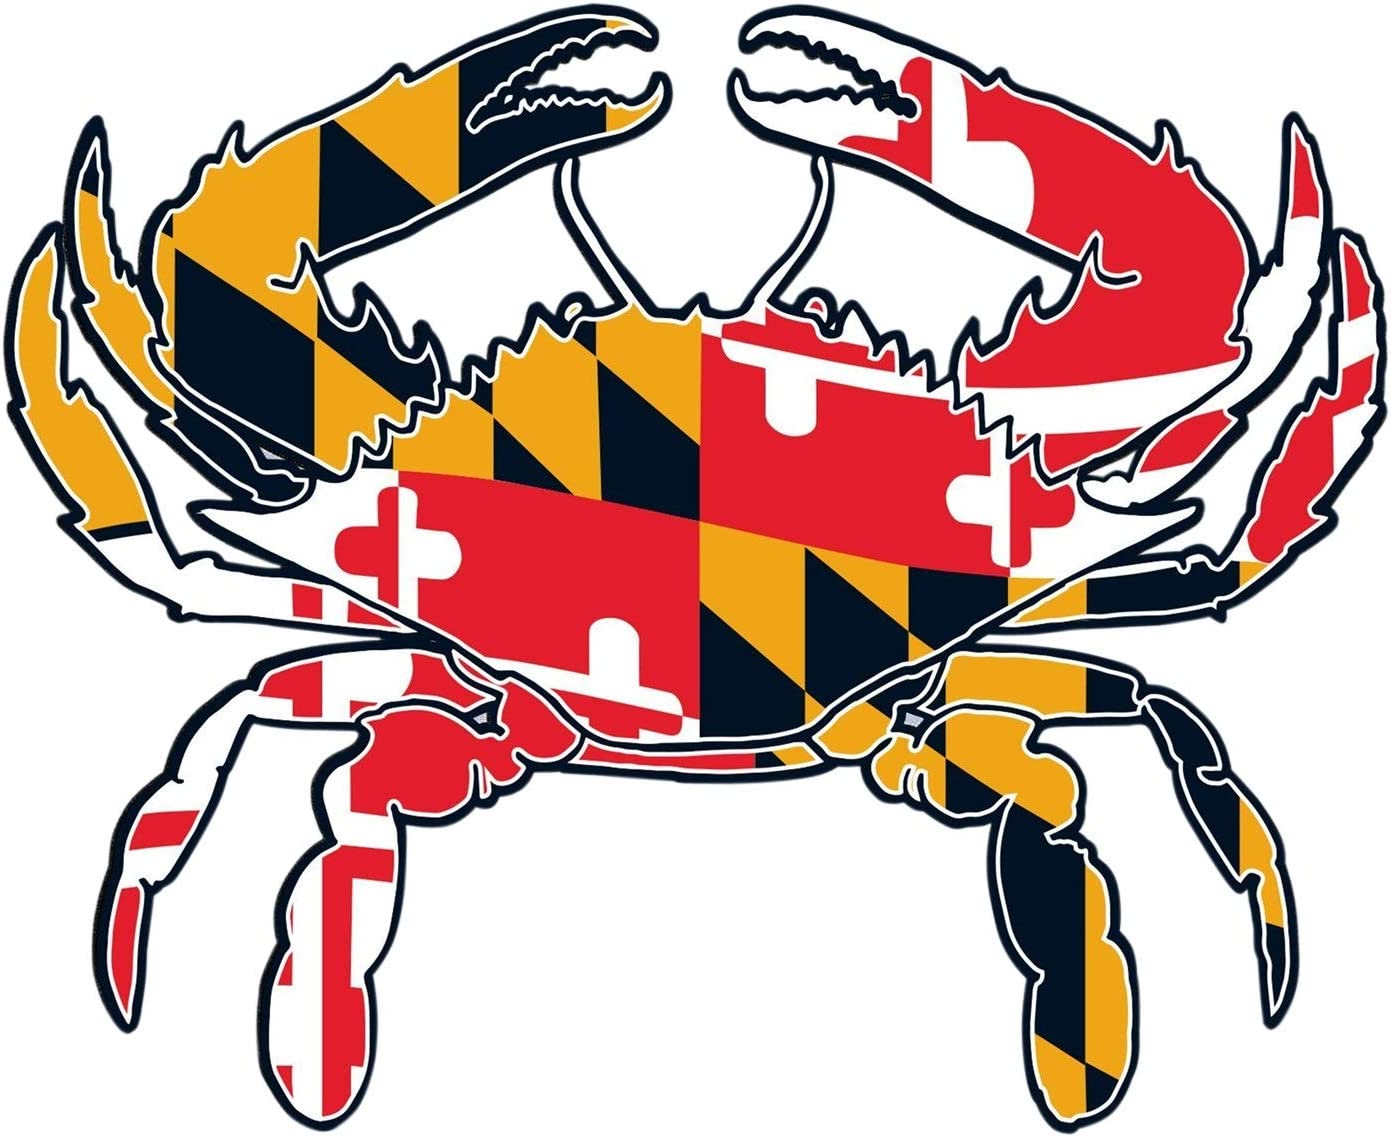 Maryland State Flag Super sale Crab Large-scale sale Cut-Out Adhesive Sticke Souvenir Bumper